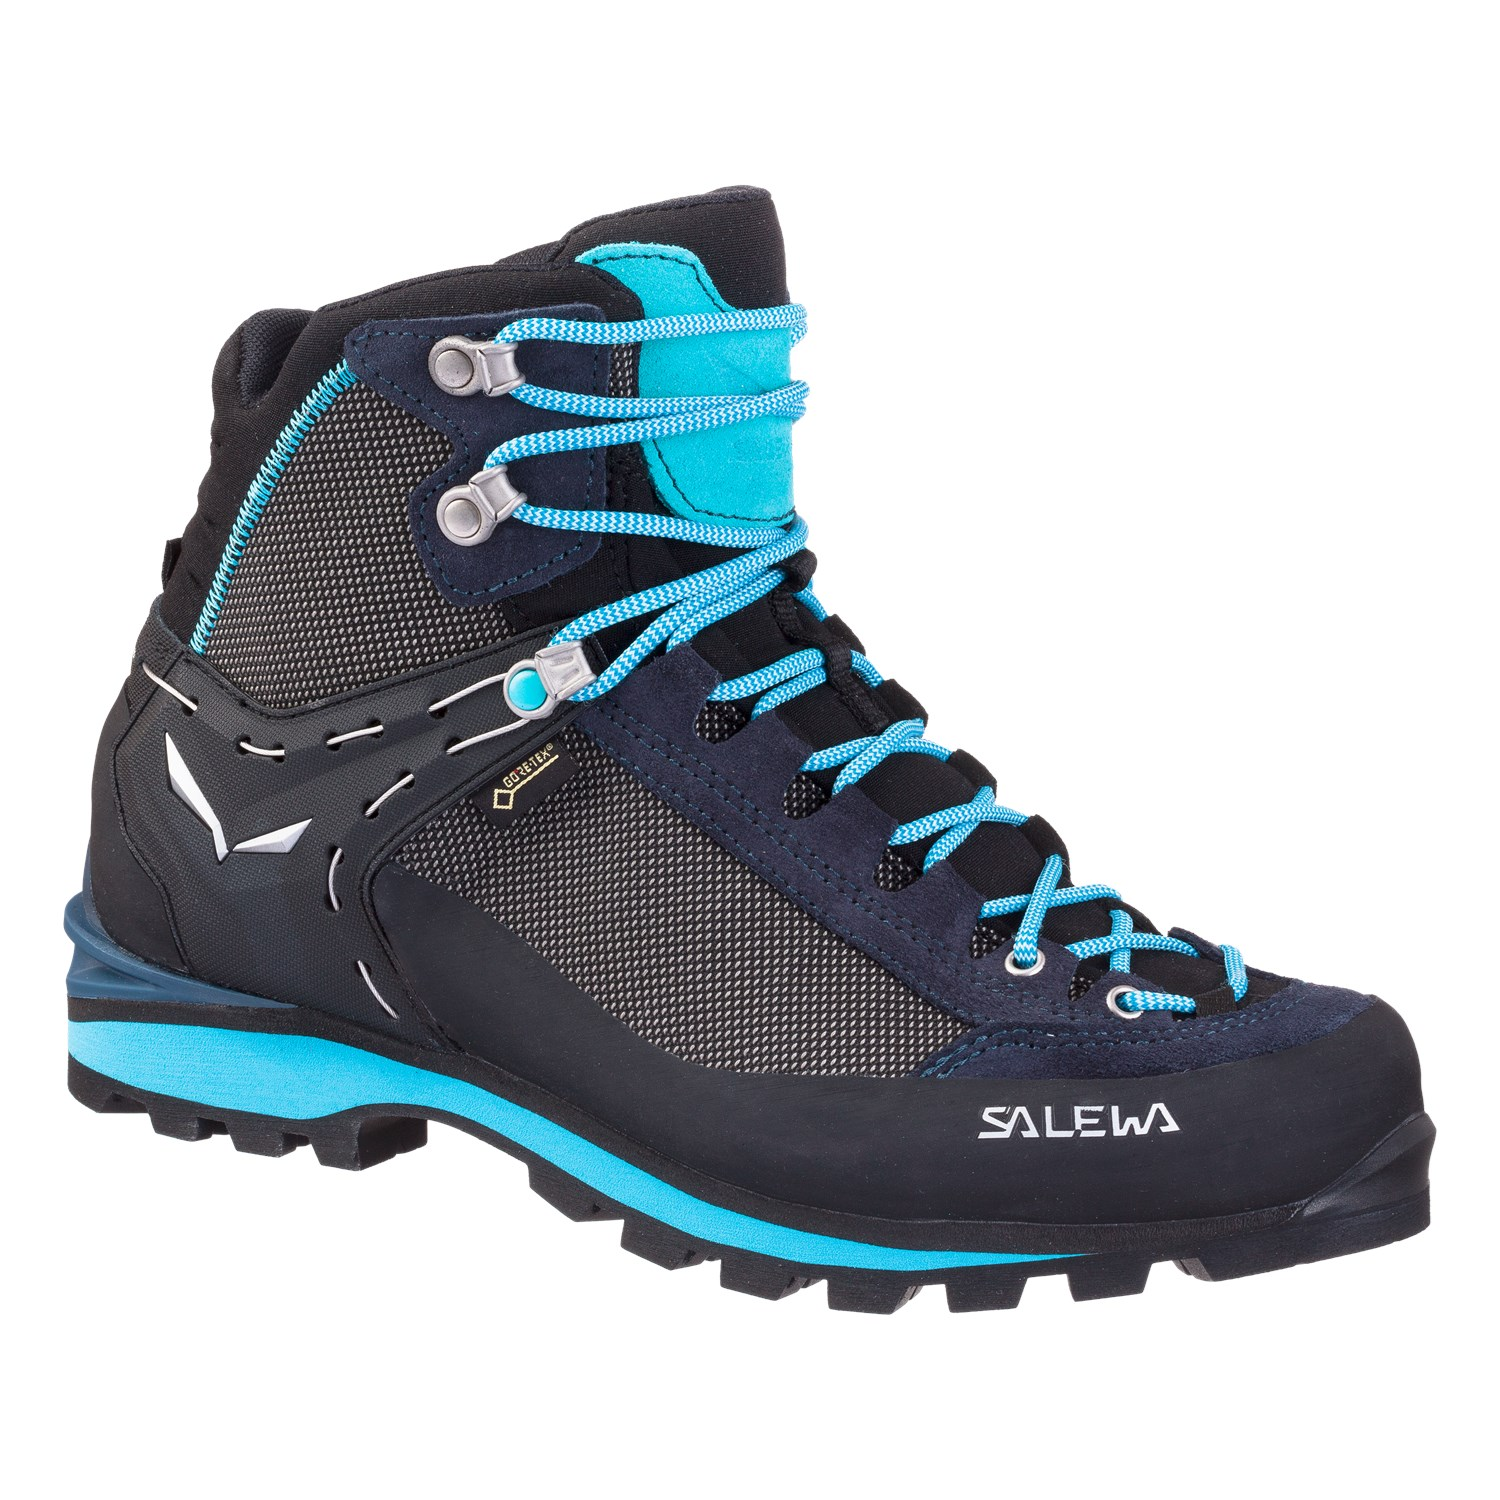 Salewa W's Crow GTX premium navyeethernal blue